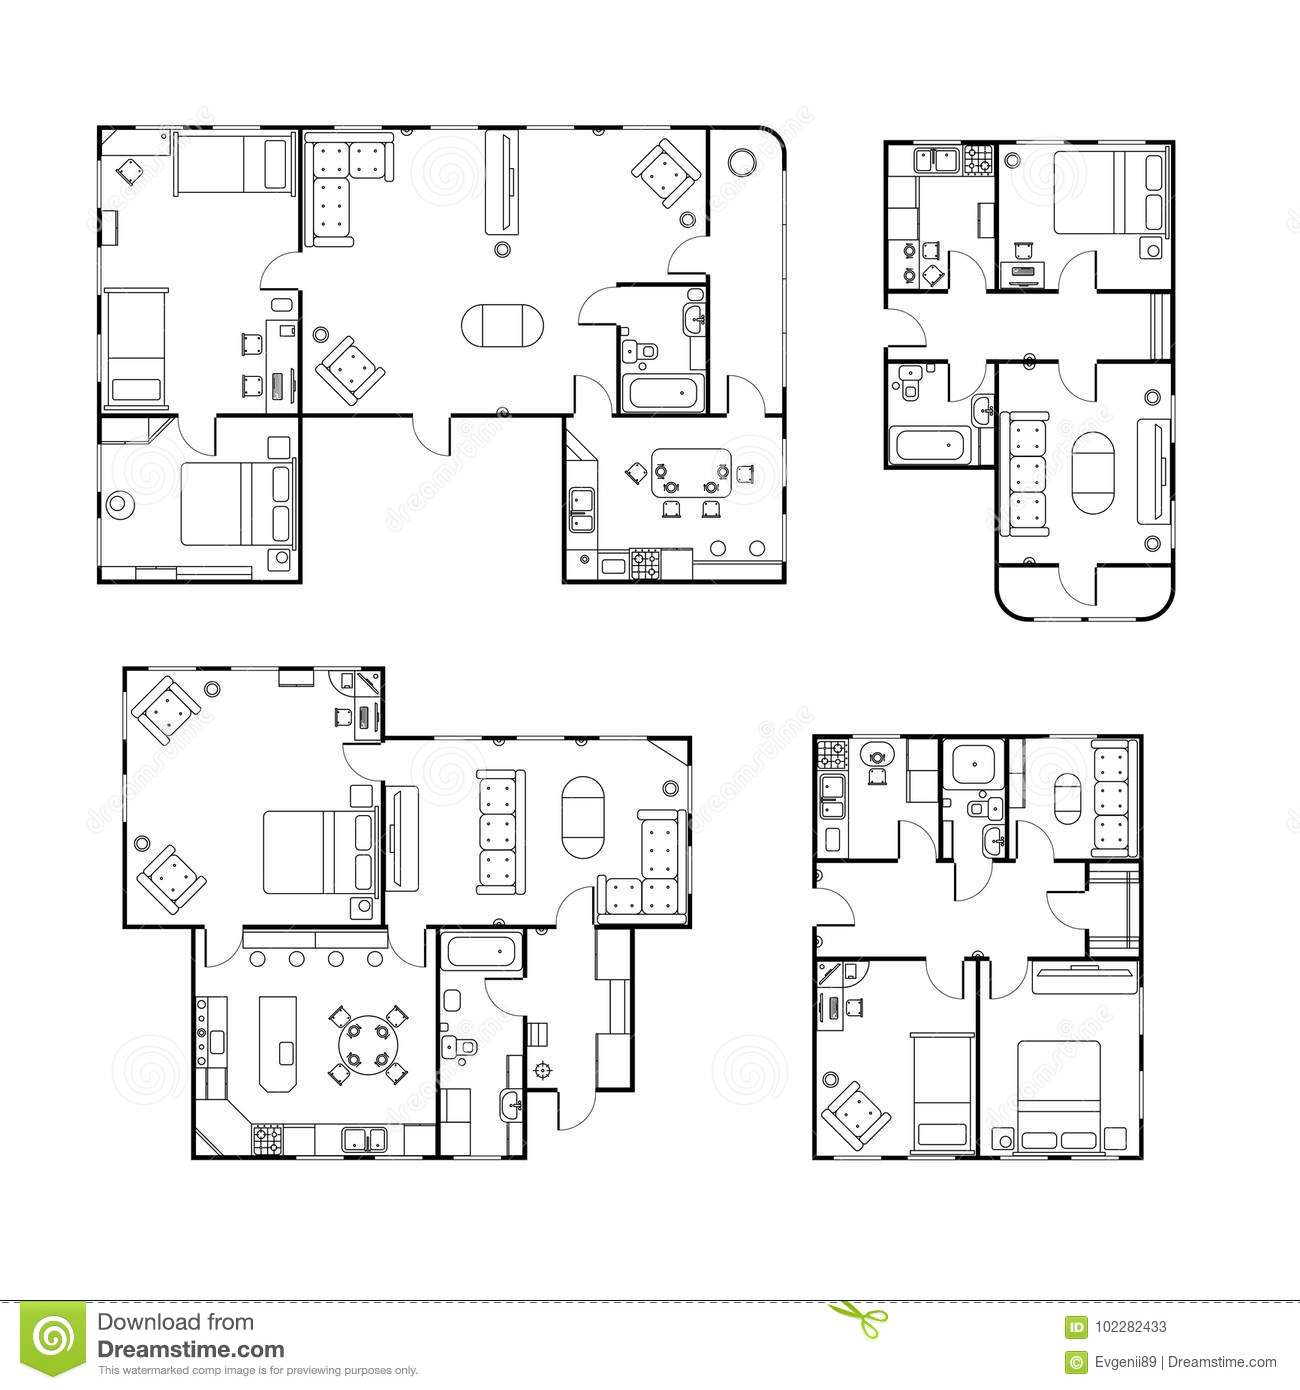 set of different black and white house floor plans with interior